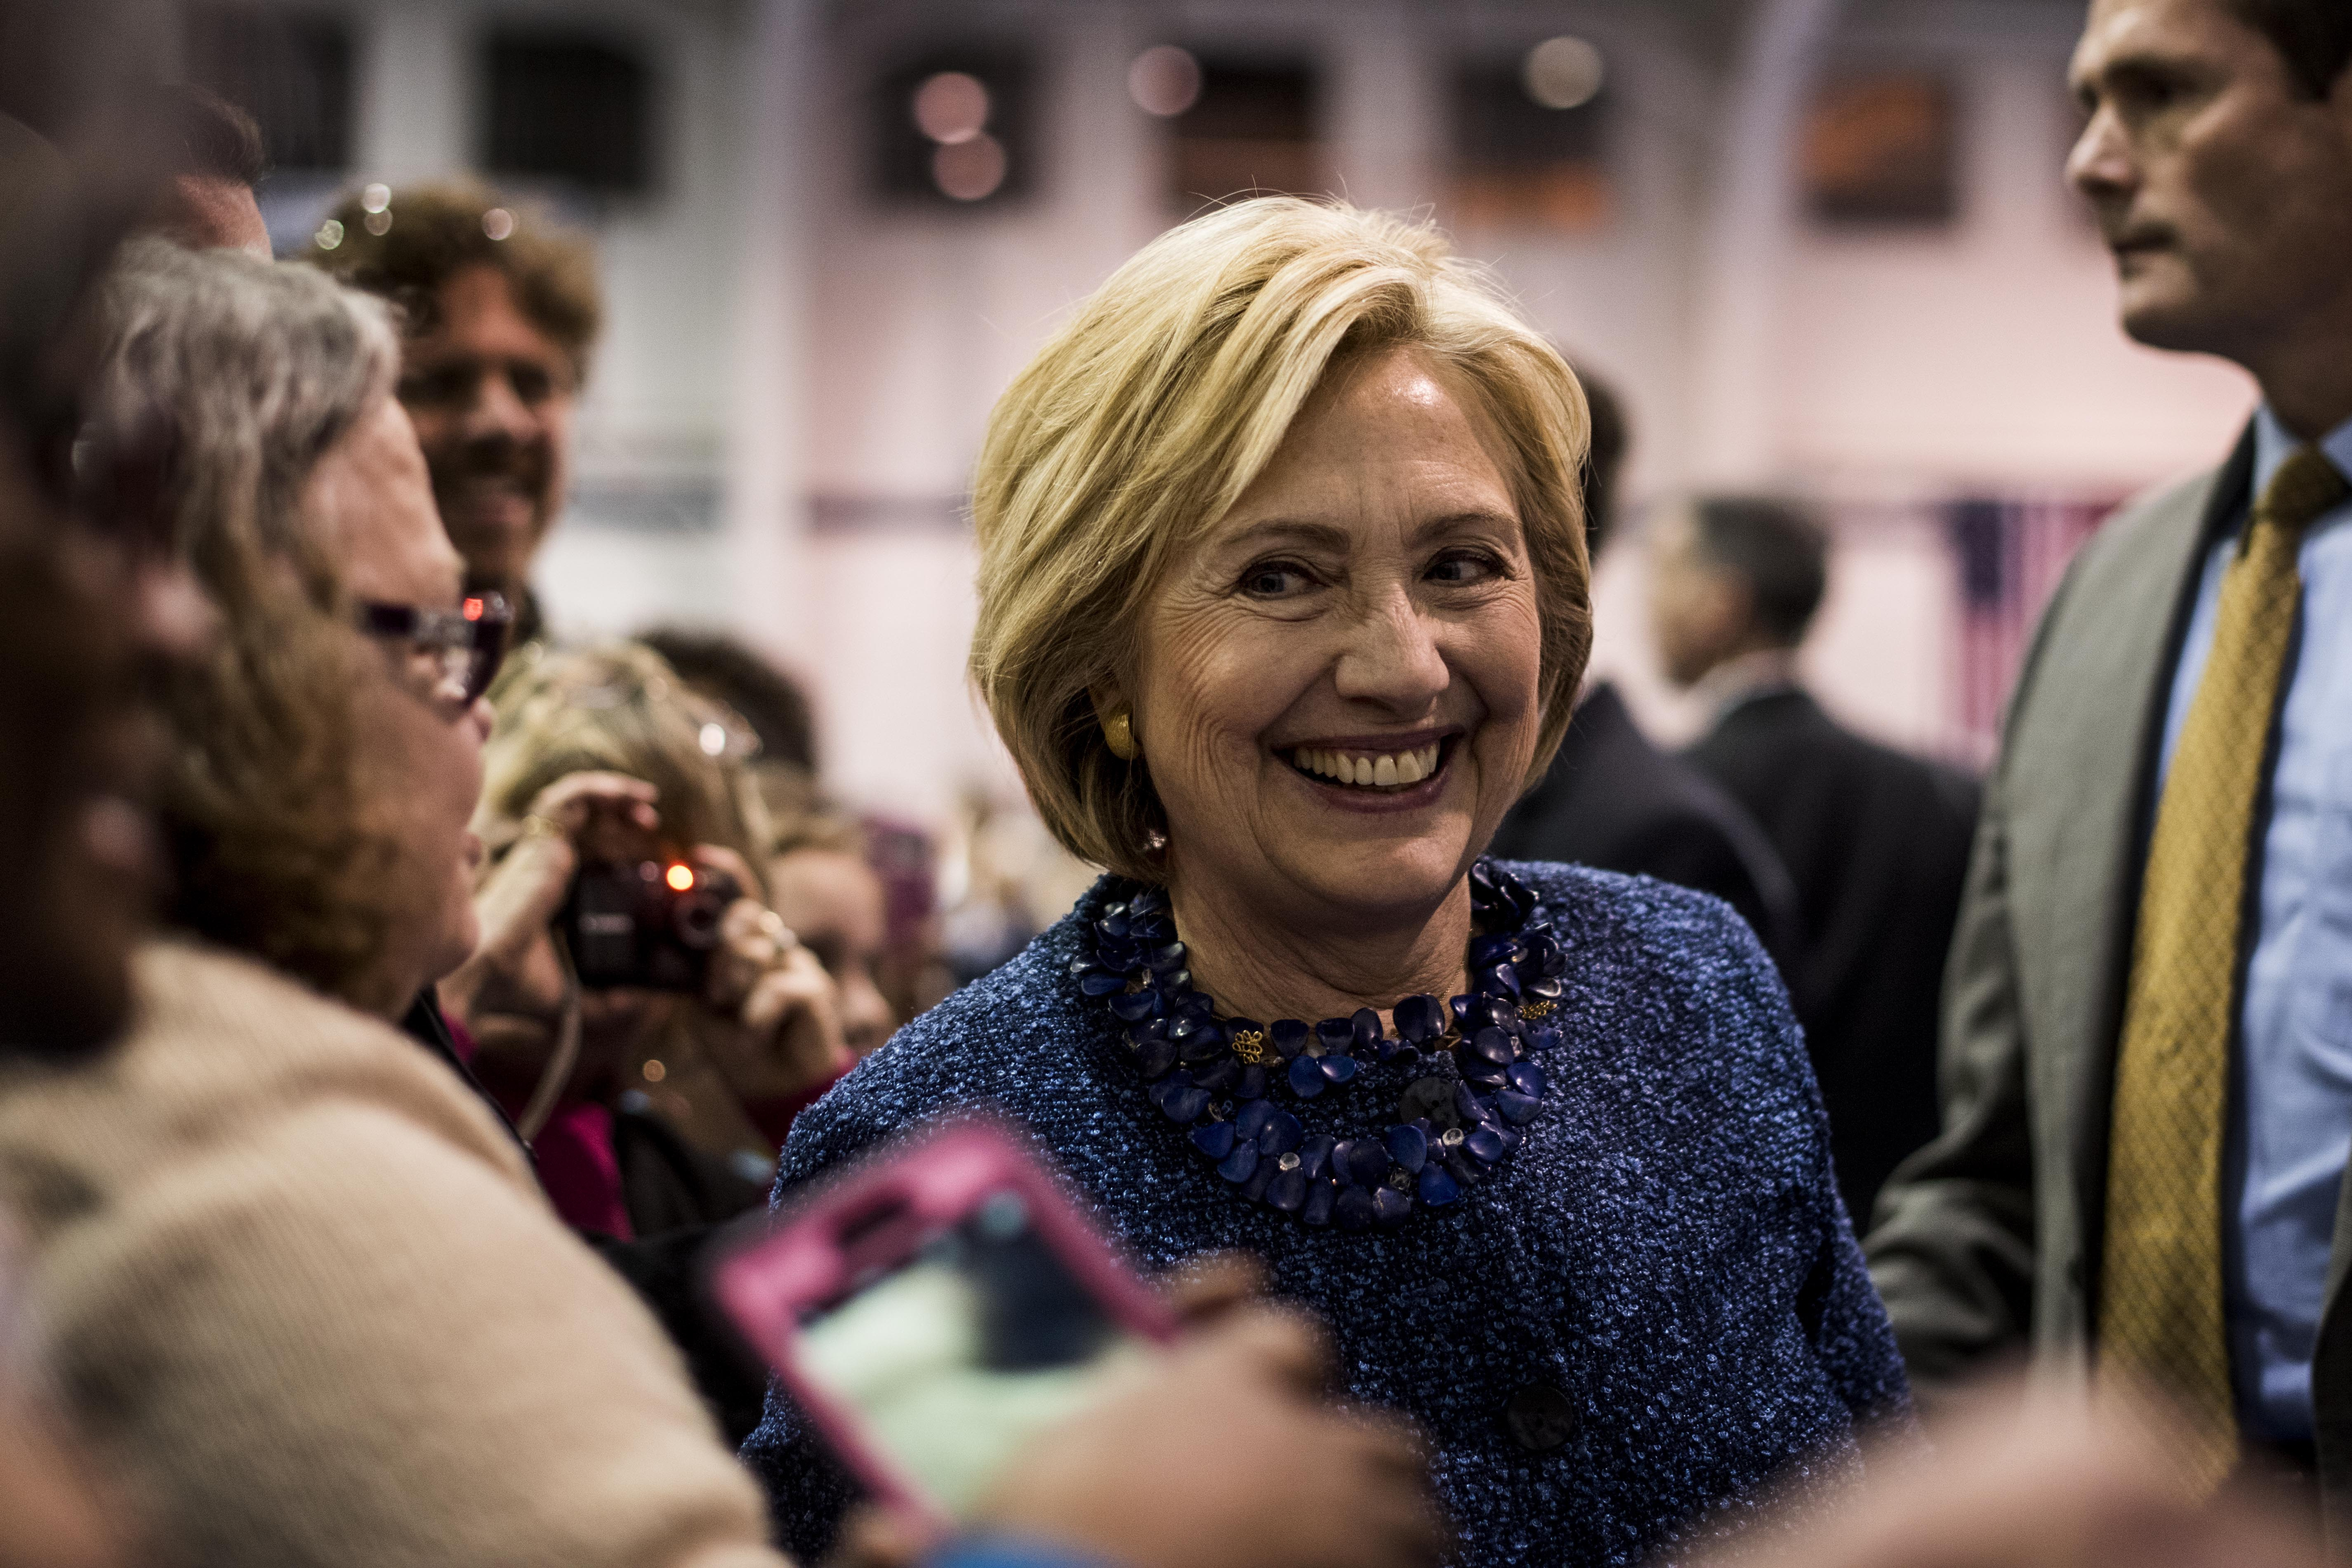 Former Secretary of State Hillary Clinton speaks to and meets voters at Henderson A. Johnson Gymnasium during a rally in Nashville, Tennessee on Friday November 20, 2015.